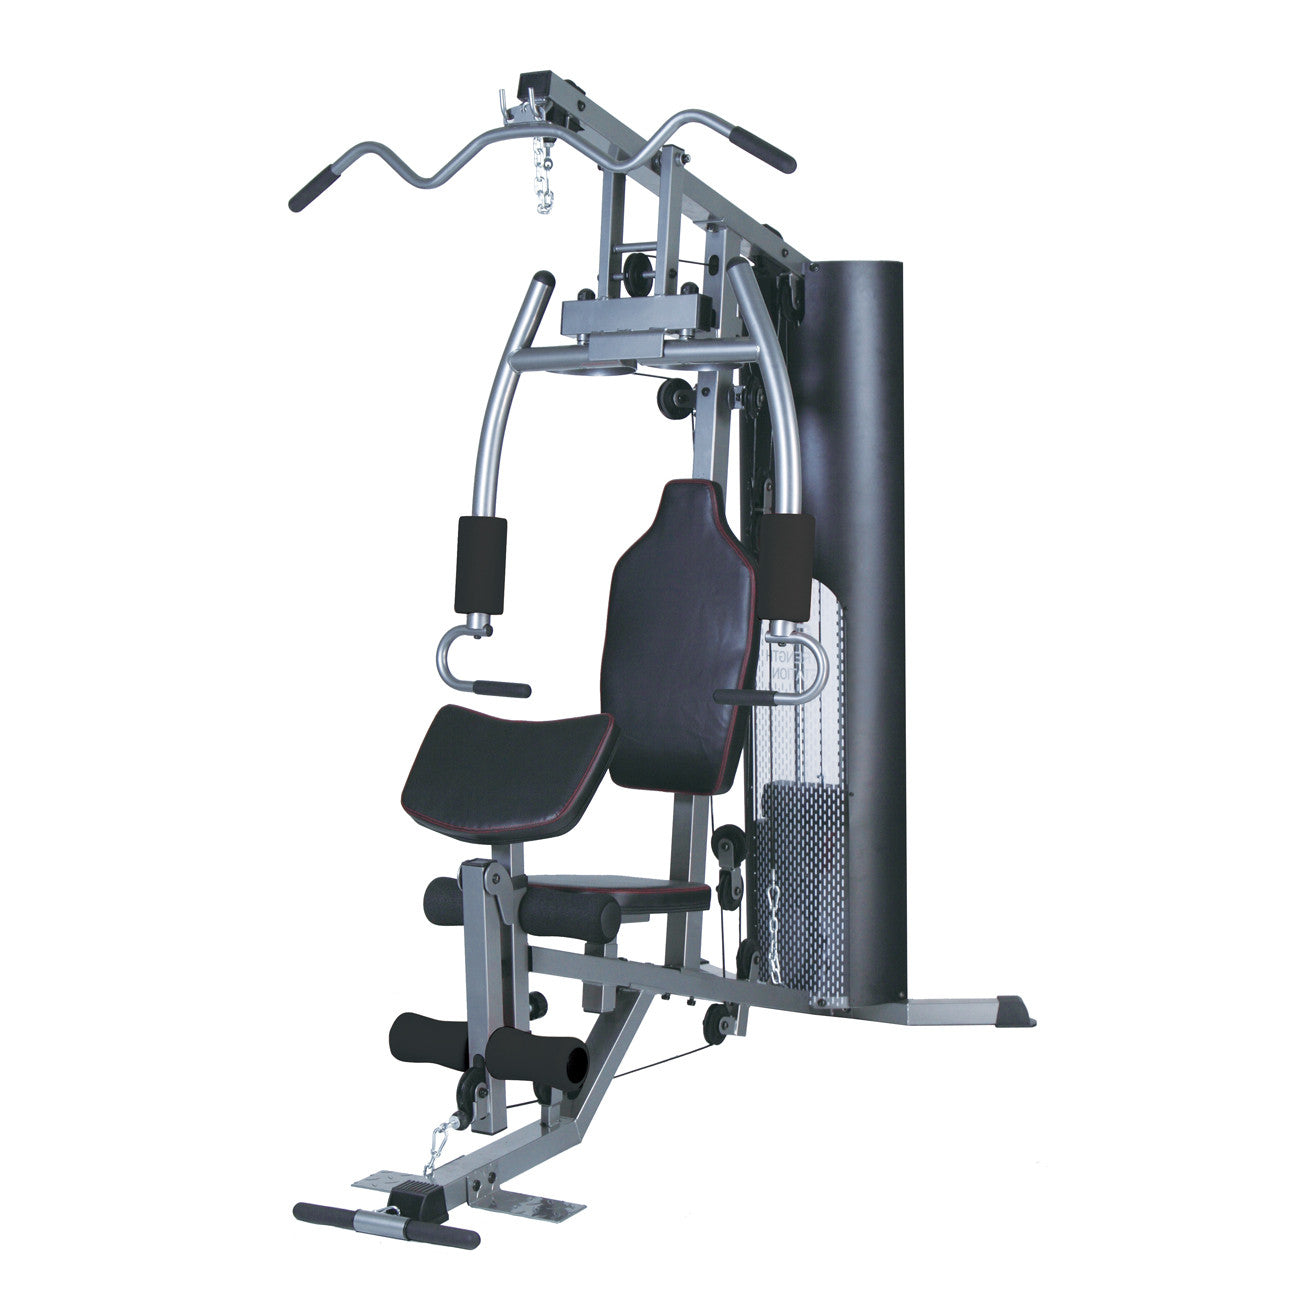 2807d9c2d05 Propel Fitness Multi Gym SM1.18 - FitnessOne Store ...